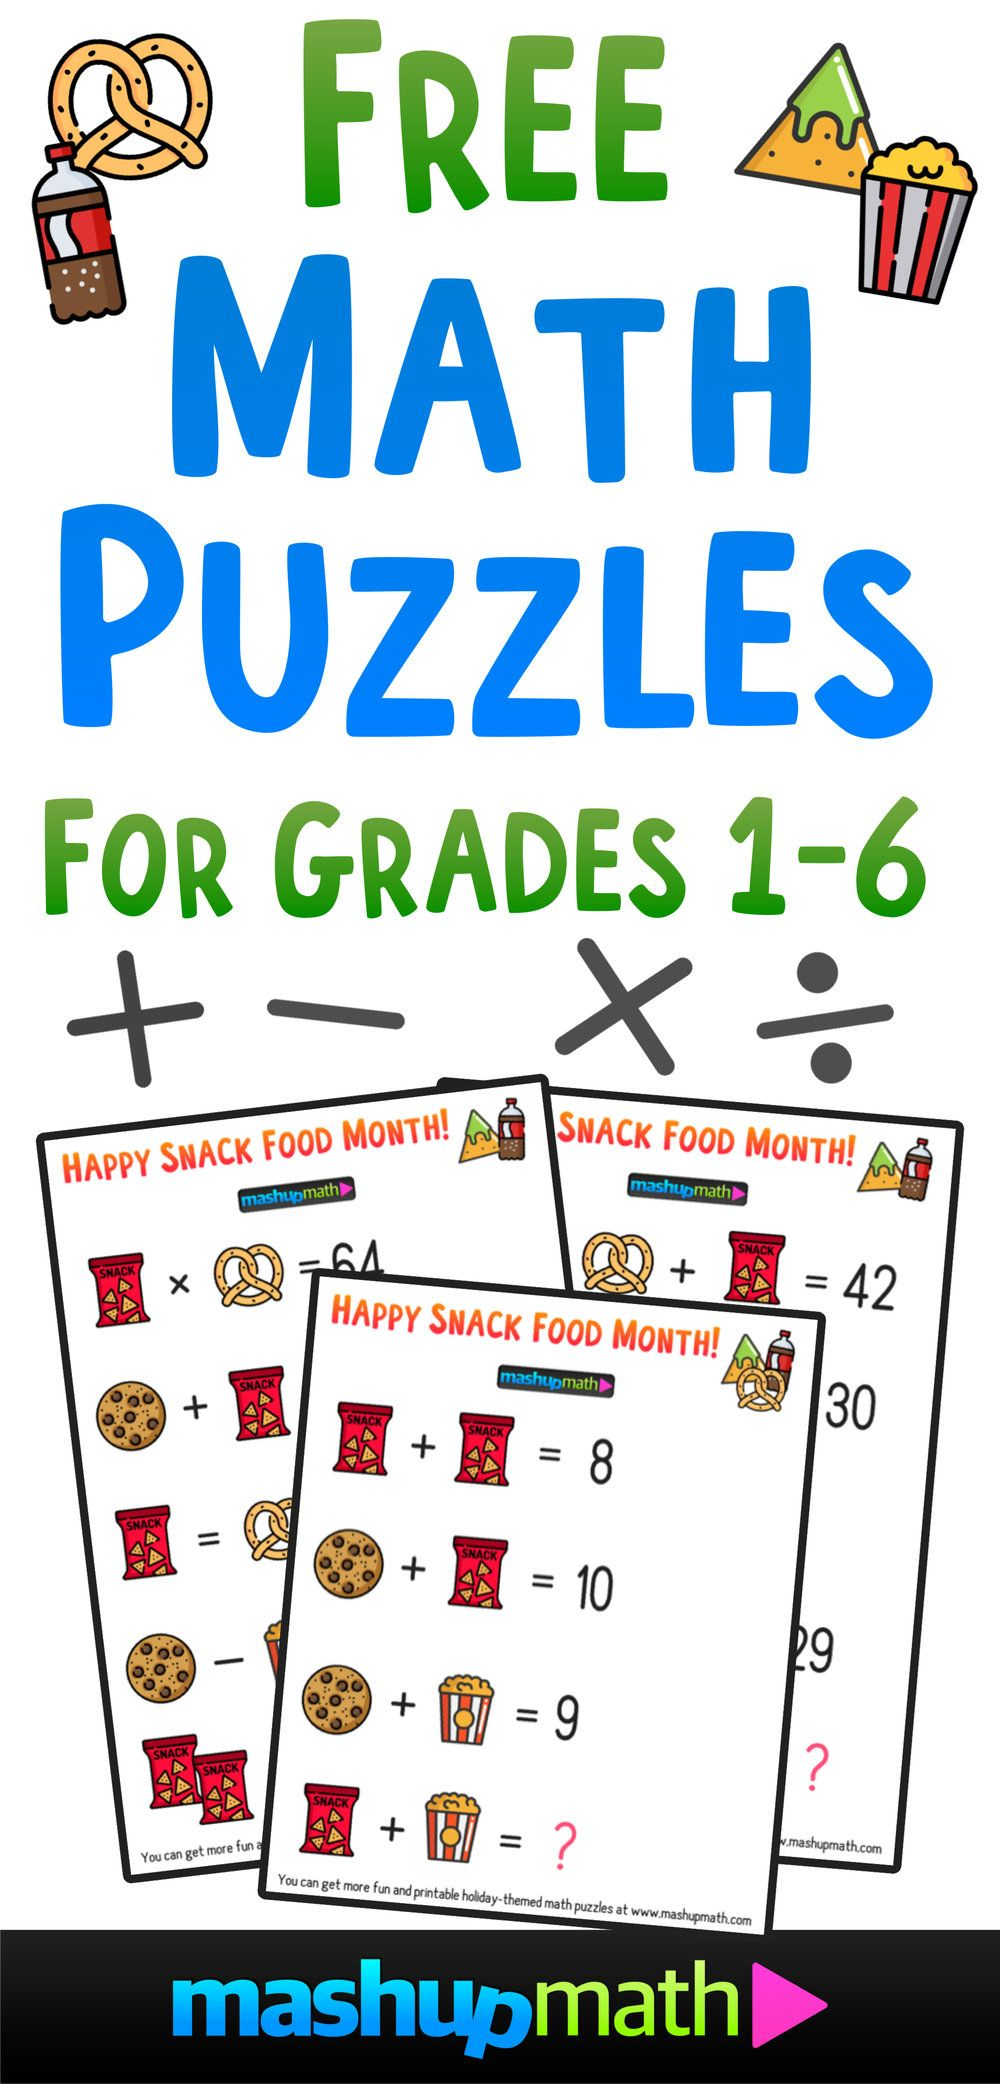 Free Math Brain Teaser Puzzles For Kids In Grades 1 6 To Celebrate Snack Food Month Mashup Math Fun Math Worksheets Maths Puzzles Free Math Math puzzle worksheets for kindergarten